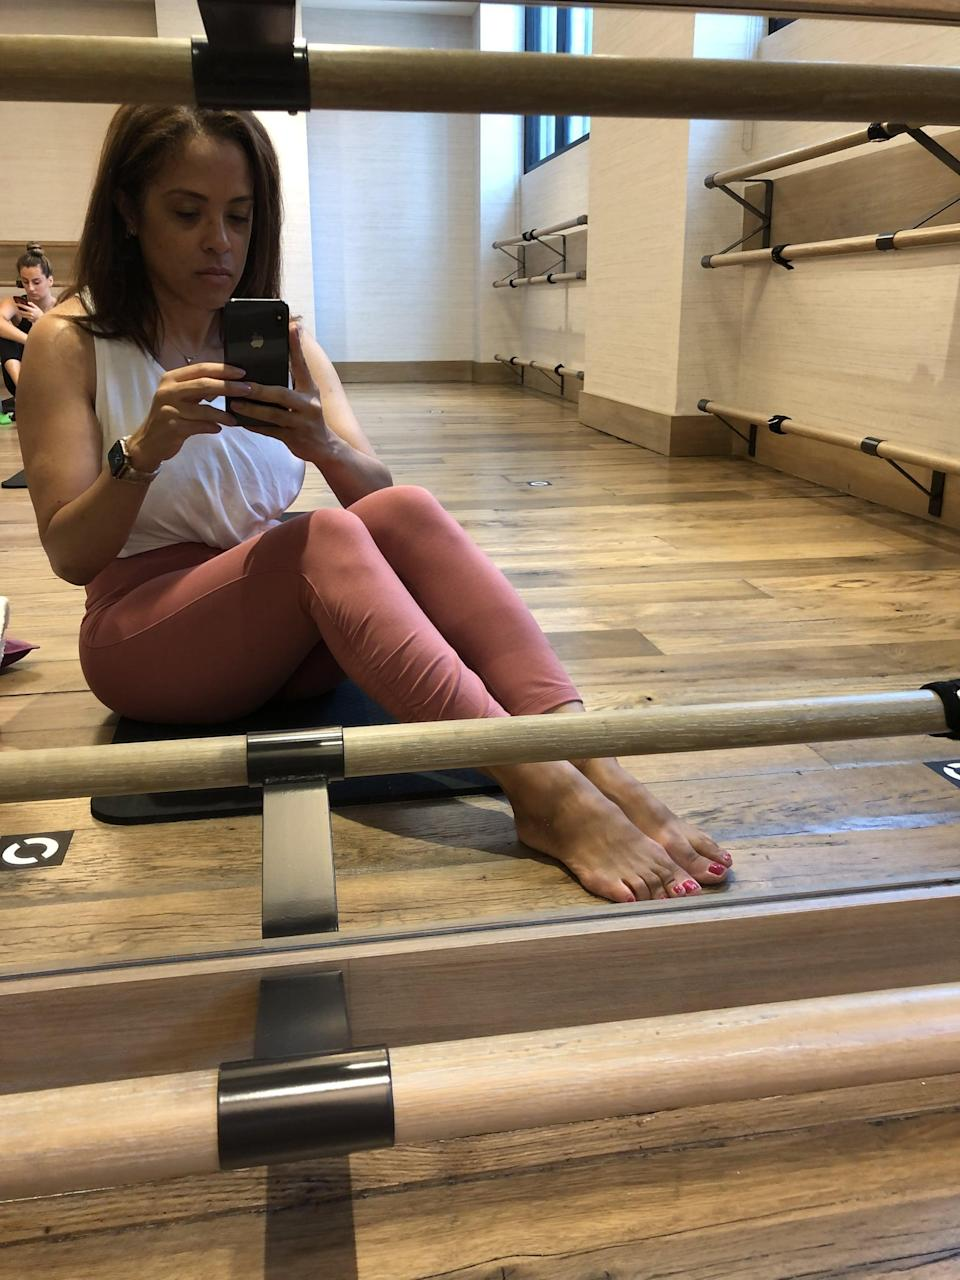 """<p>While I often like pants with high compression, unless the fit is just right, they roll at the waist or constrict too much for mat-based exercises. This pair's top stayed up no matter how I moved, and the light compression wasn't uncomfortable, even during the abs portion of class.</p> <p>In fact, these moisture-wicking <a href=""""https://www.popsugar.com/fitness/best-old-navy-go-dry-workout-clothes-for-women-48417375"""" class=""""link rapid-noclick-resp"""" rel=""""nofollow noopener"""" target=""""_blank"""" data-ylk=""""slk:GoDry leggings"""">GoDry leggings</a> are made mainly of cotton jersey so they feel like a thick, soft tee, but they still passed my squat test as they're not sheer at all. Of course, I'm never mad at a hidden pocket (which easily fits a phone and keys), either.</p> <p>The <span>petite one I selected</span> hit my leg right where 7/8 leggings should, but the bottom can also be scrunched up a little more for someone shorter. And if I'm being totally honest, the real reason I love these most for barre in particular is that I can check out that very ruched ankle detail while I'm confirming my foot placement in the mirror . . . and they look just as cute with slides when I head home, too.</p>"""